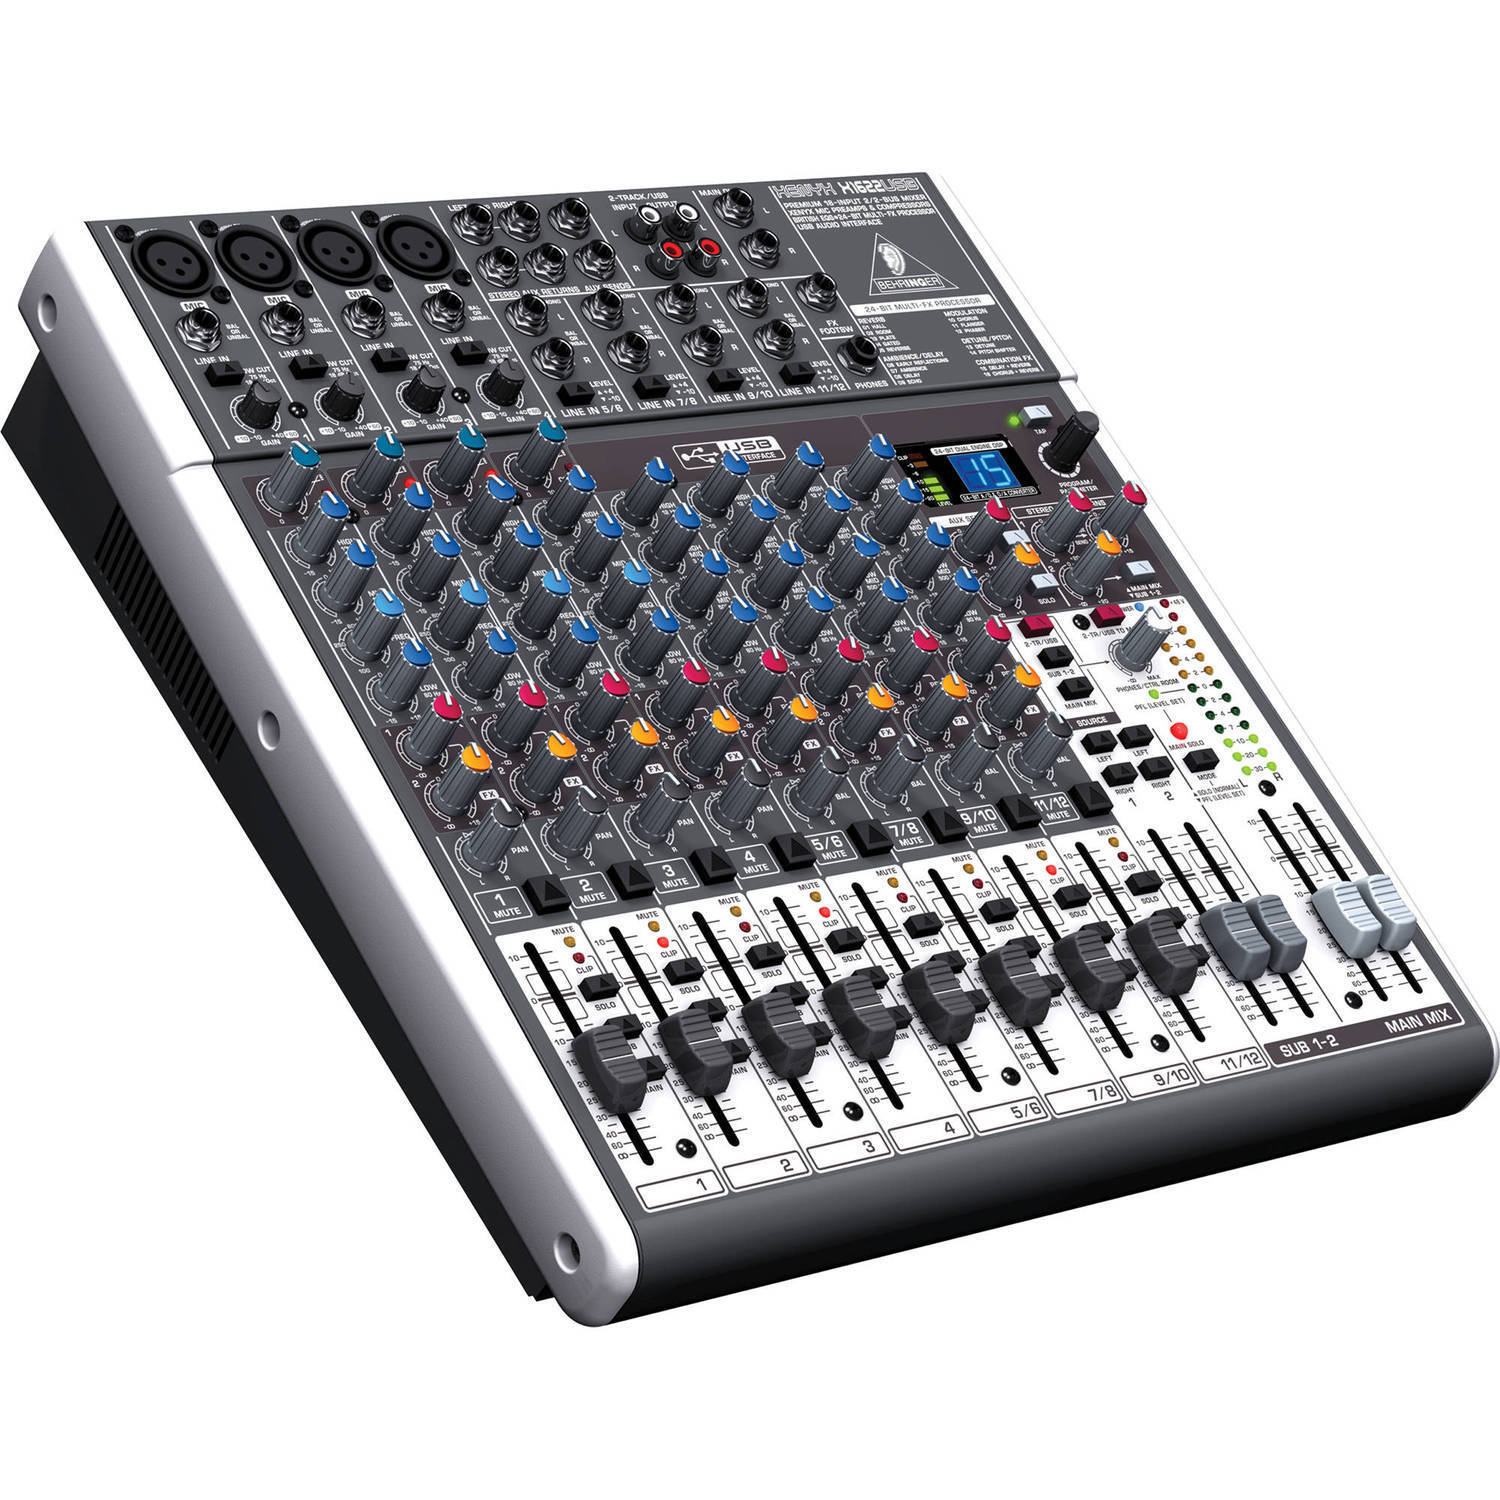 Behringer XENYX X1622USB 16-Input Live Sound Mixer Board w/ USB & FX EQ . Buy it now for 297.00